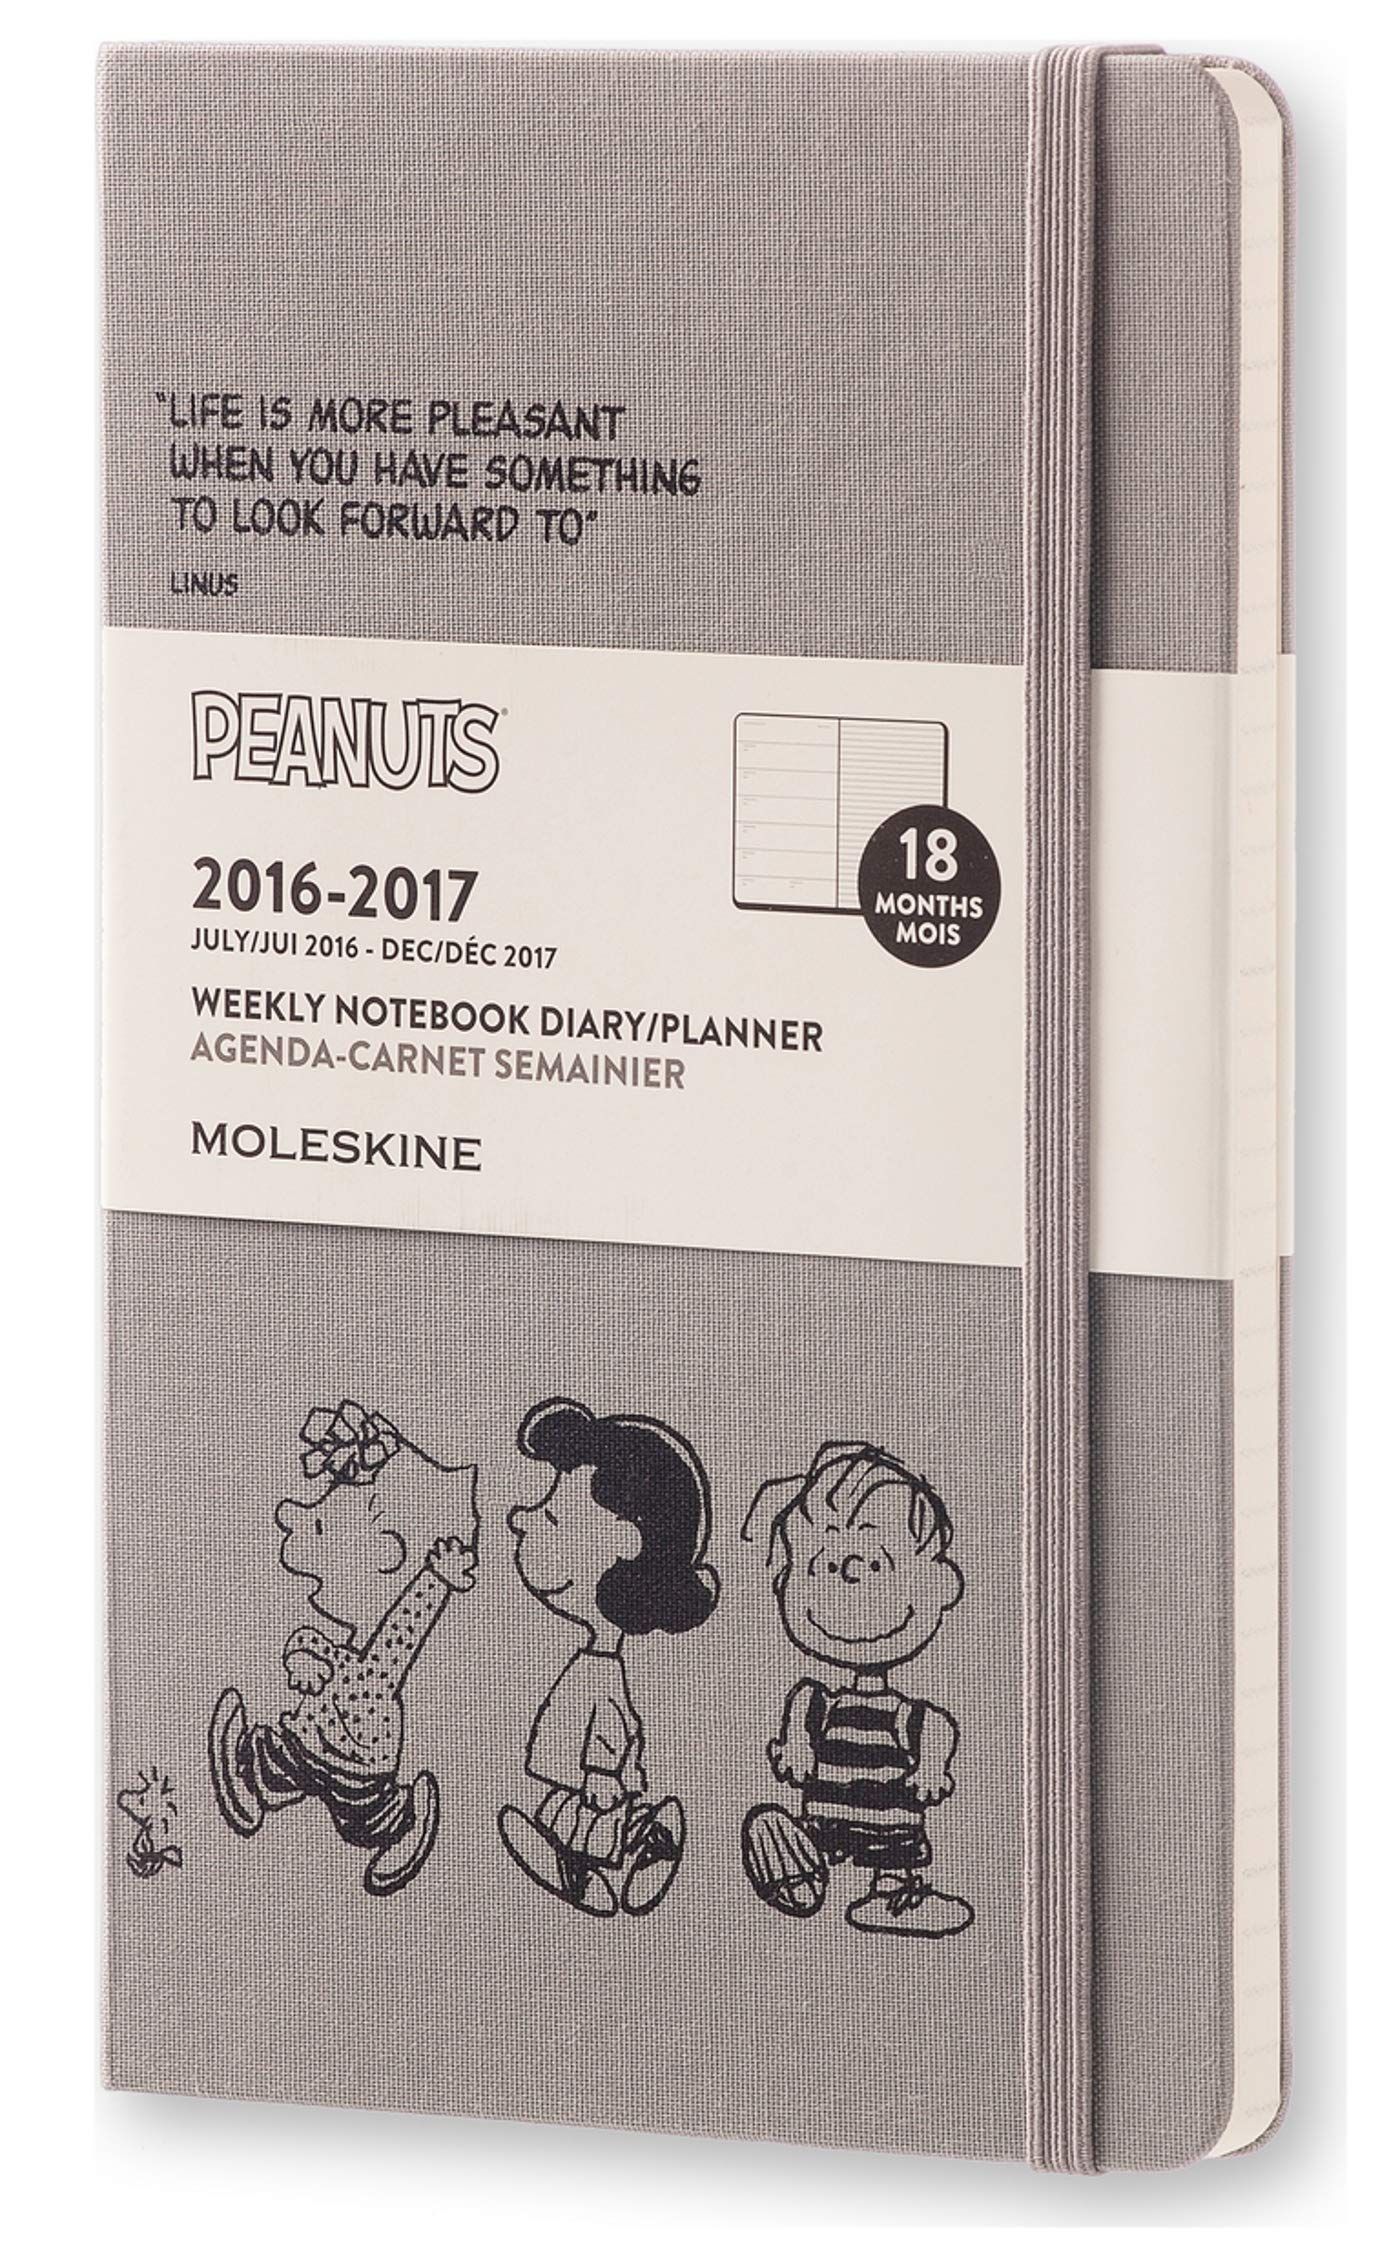 Amazon In Buy Moleskine 2016 2017 Peanuts Limited Edition Weekly Notebook 18m Large Dark Grey Hard Cover 5 X 8 25 Book Online At Low Prices In India Moleskine 2016 2017 Peanuts Limited Edition Weekly